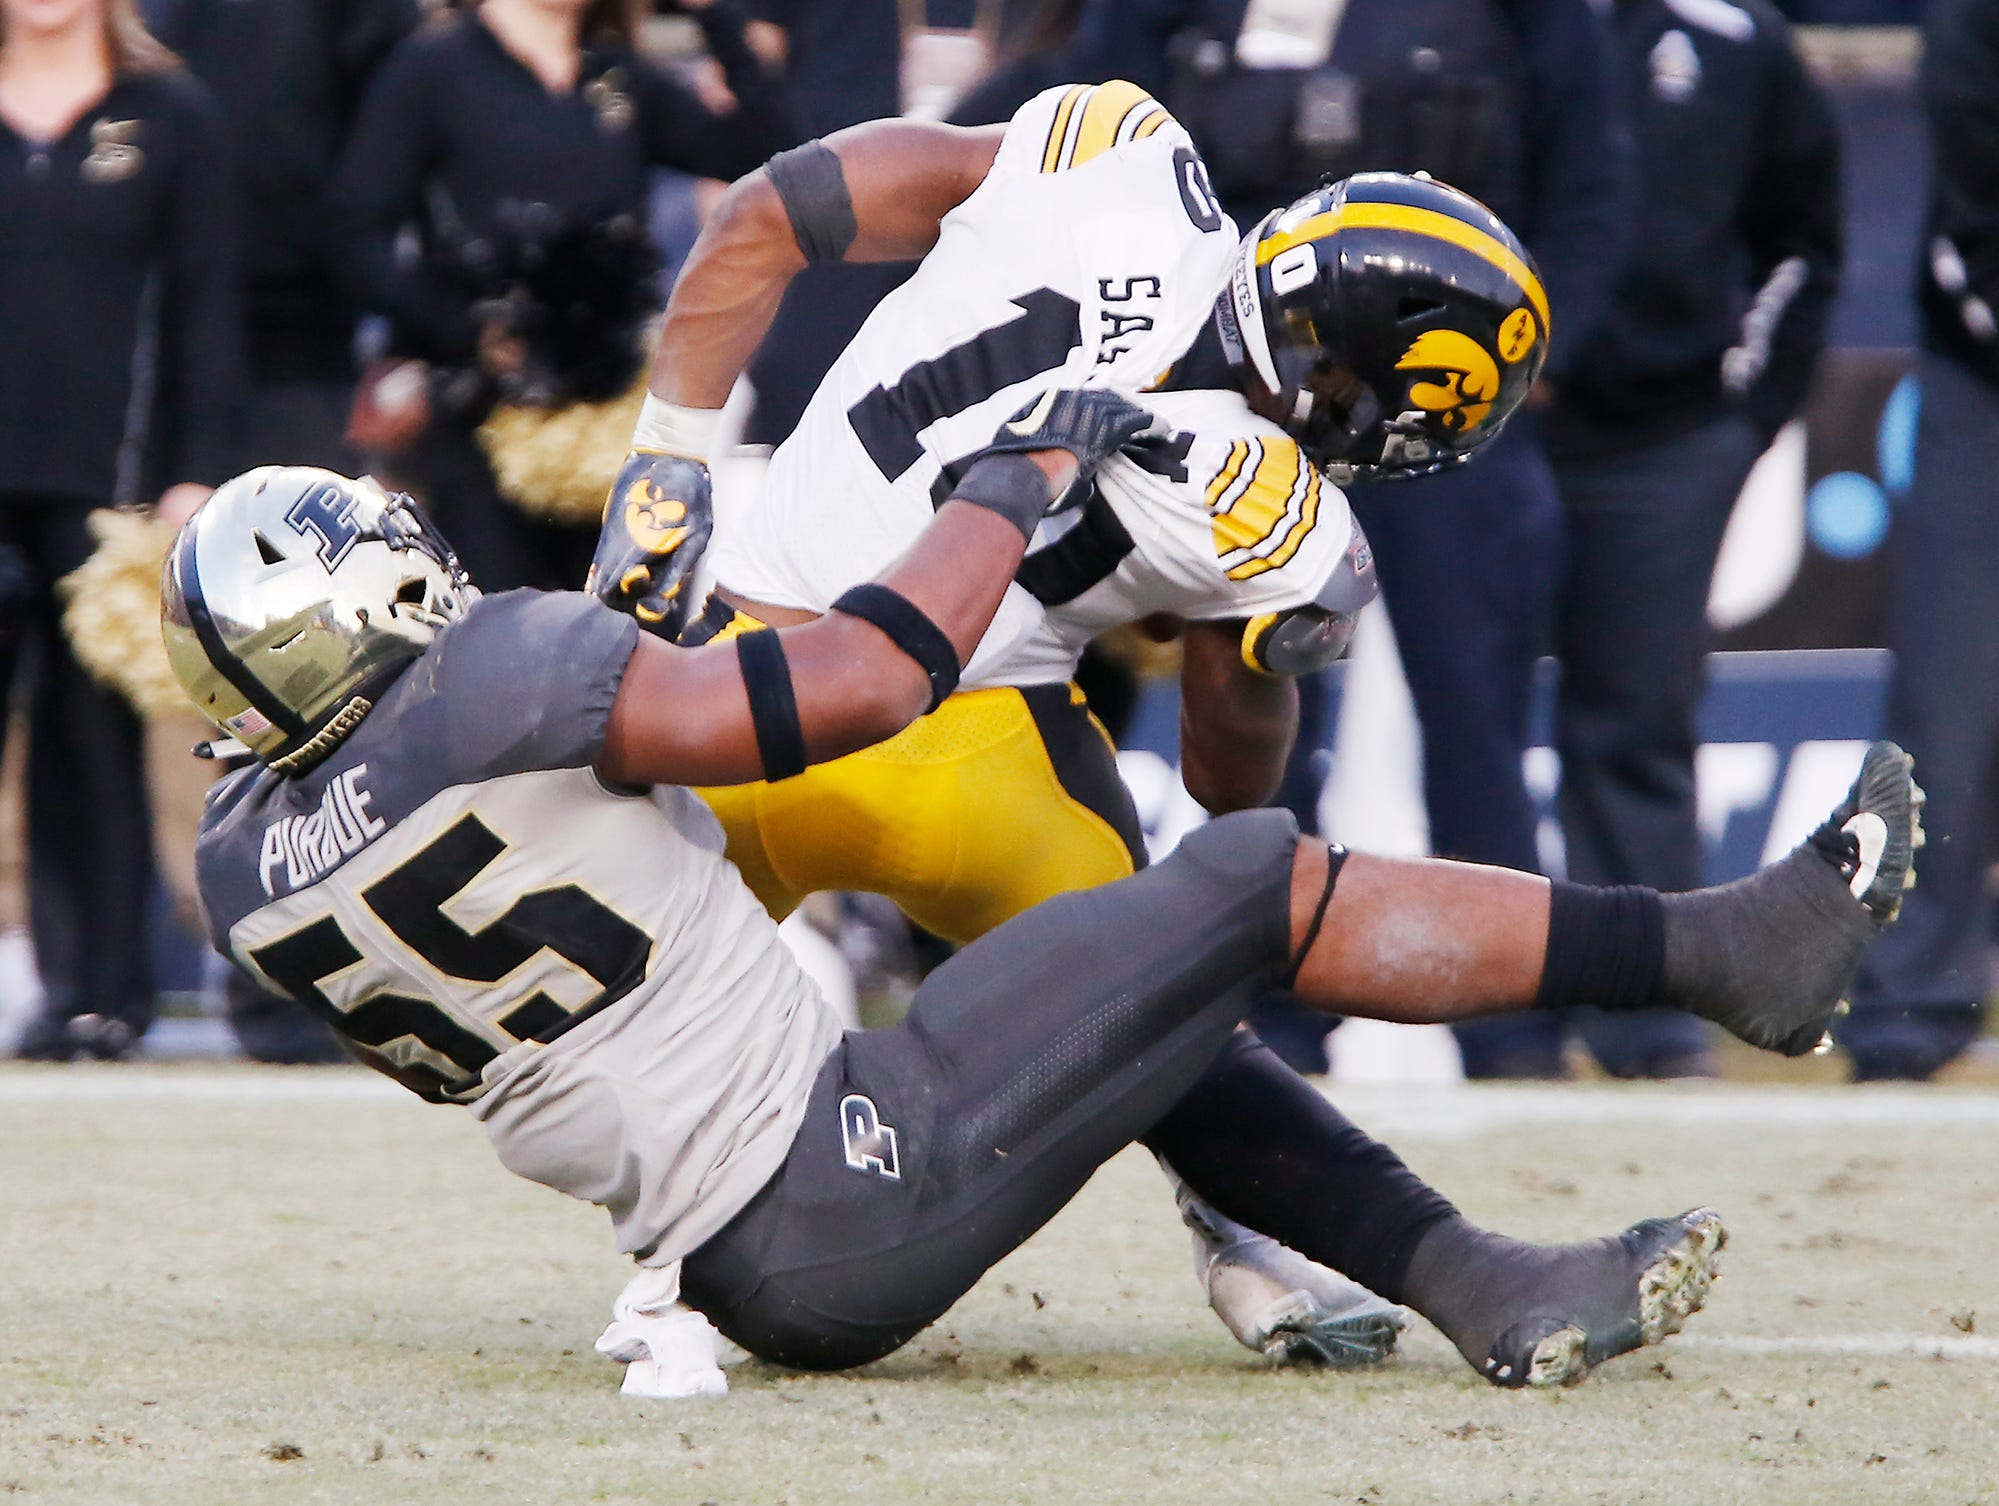 Derrick Barnes of Purdue brings down Mekhi Sargent of Iowa in the second half Saturday, November 3, 2018, at Ross-Ade Stadium. Purdue defeated Iowa 38-36.